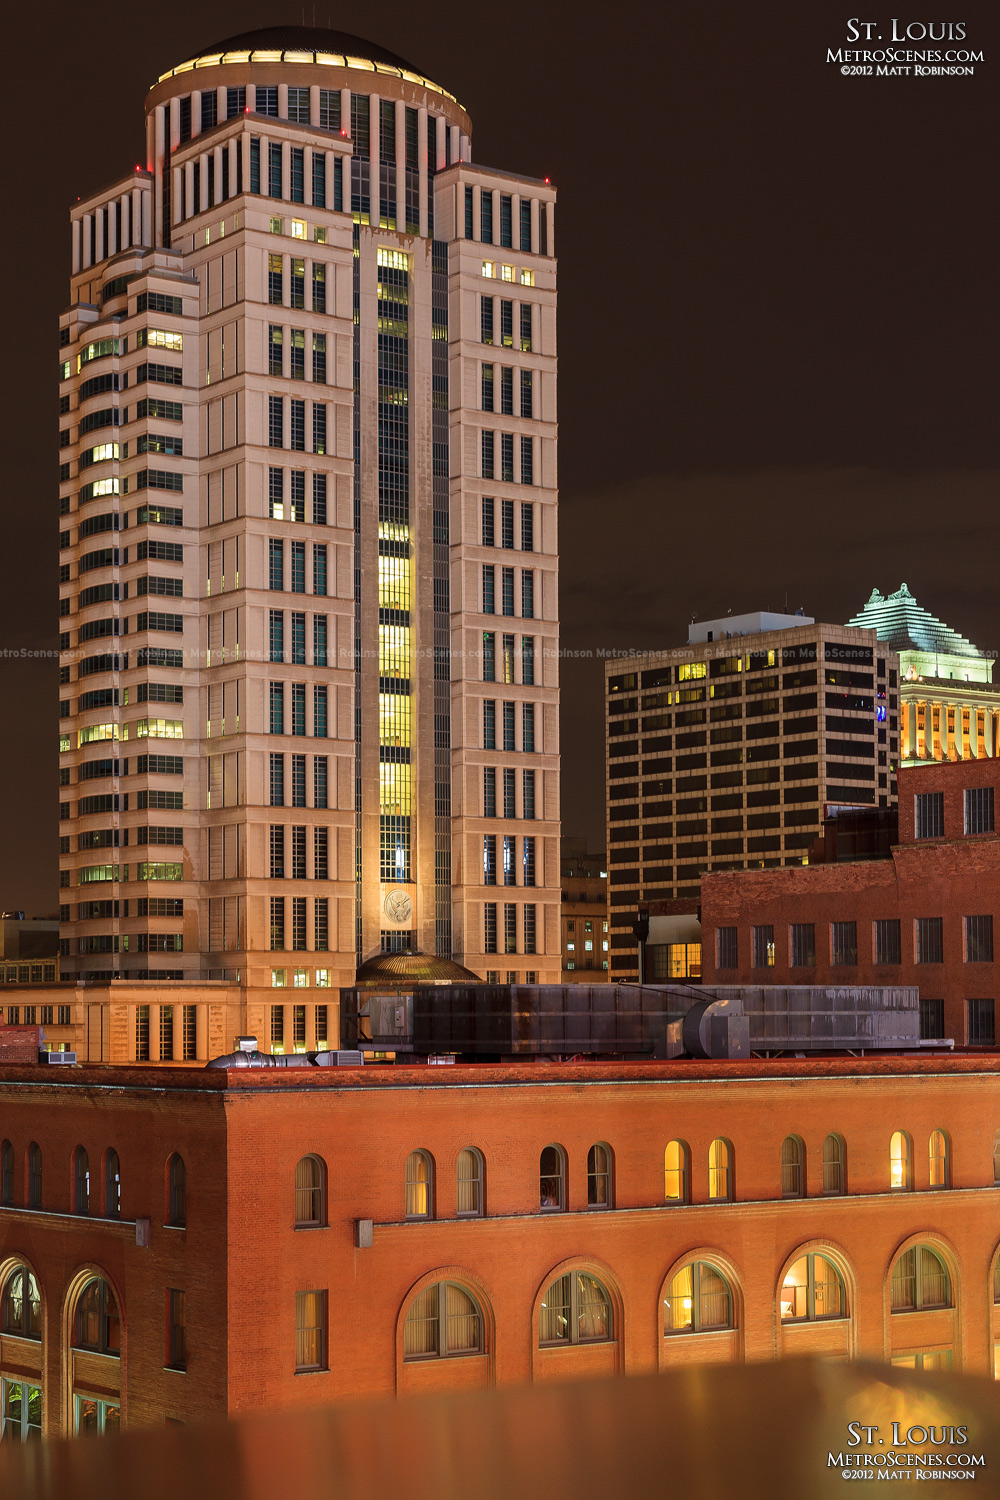 Eagleton Federal Courthouse from Busch Stadium